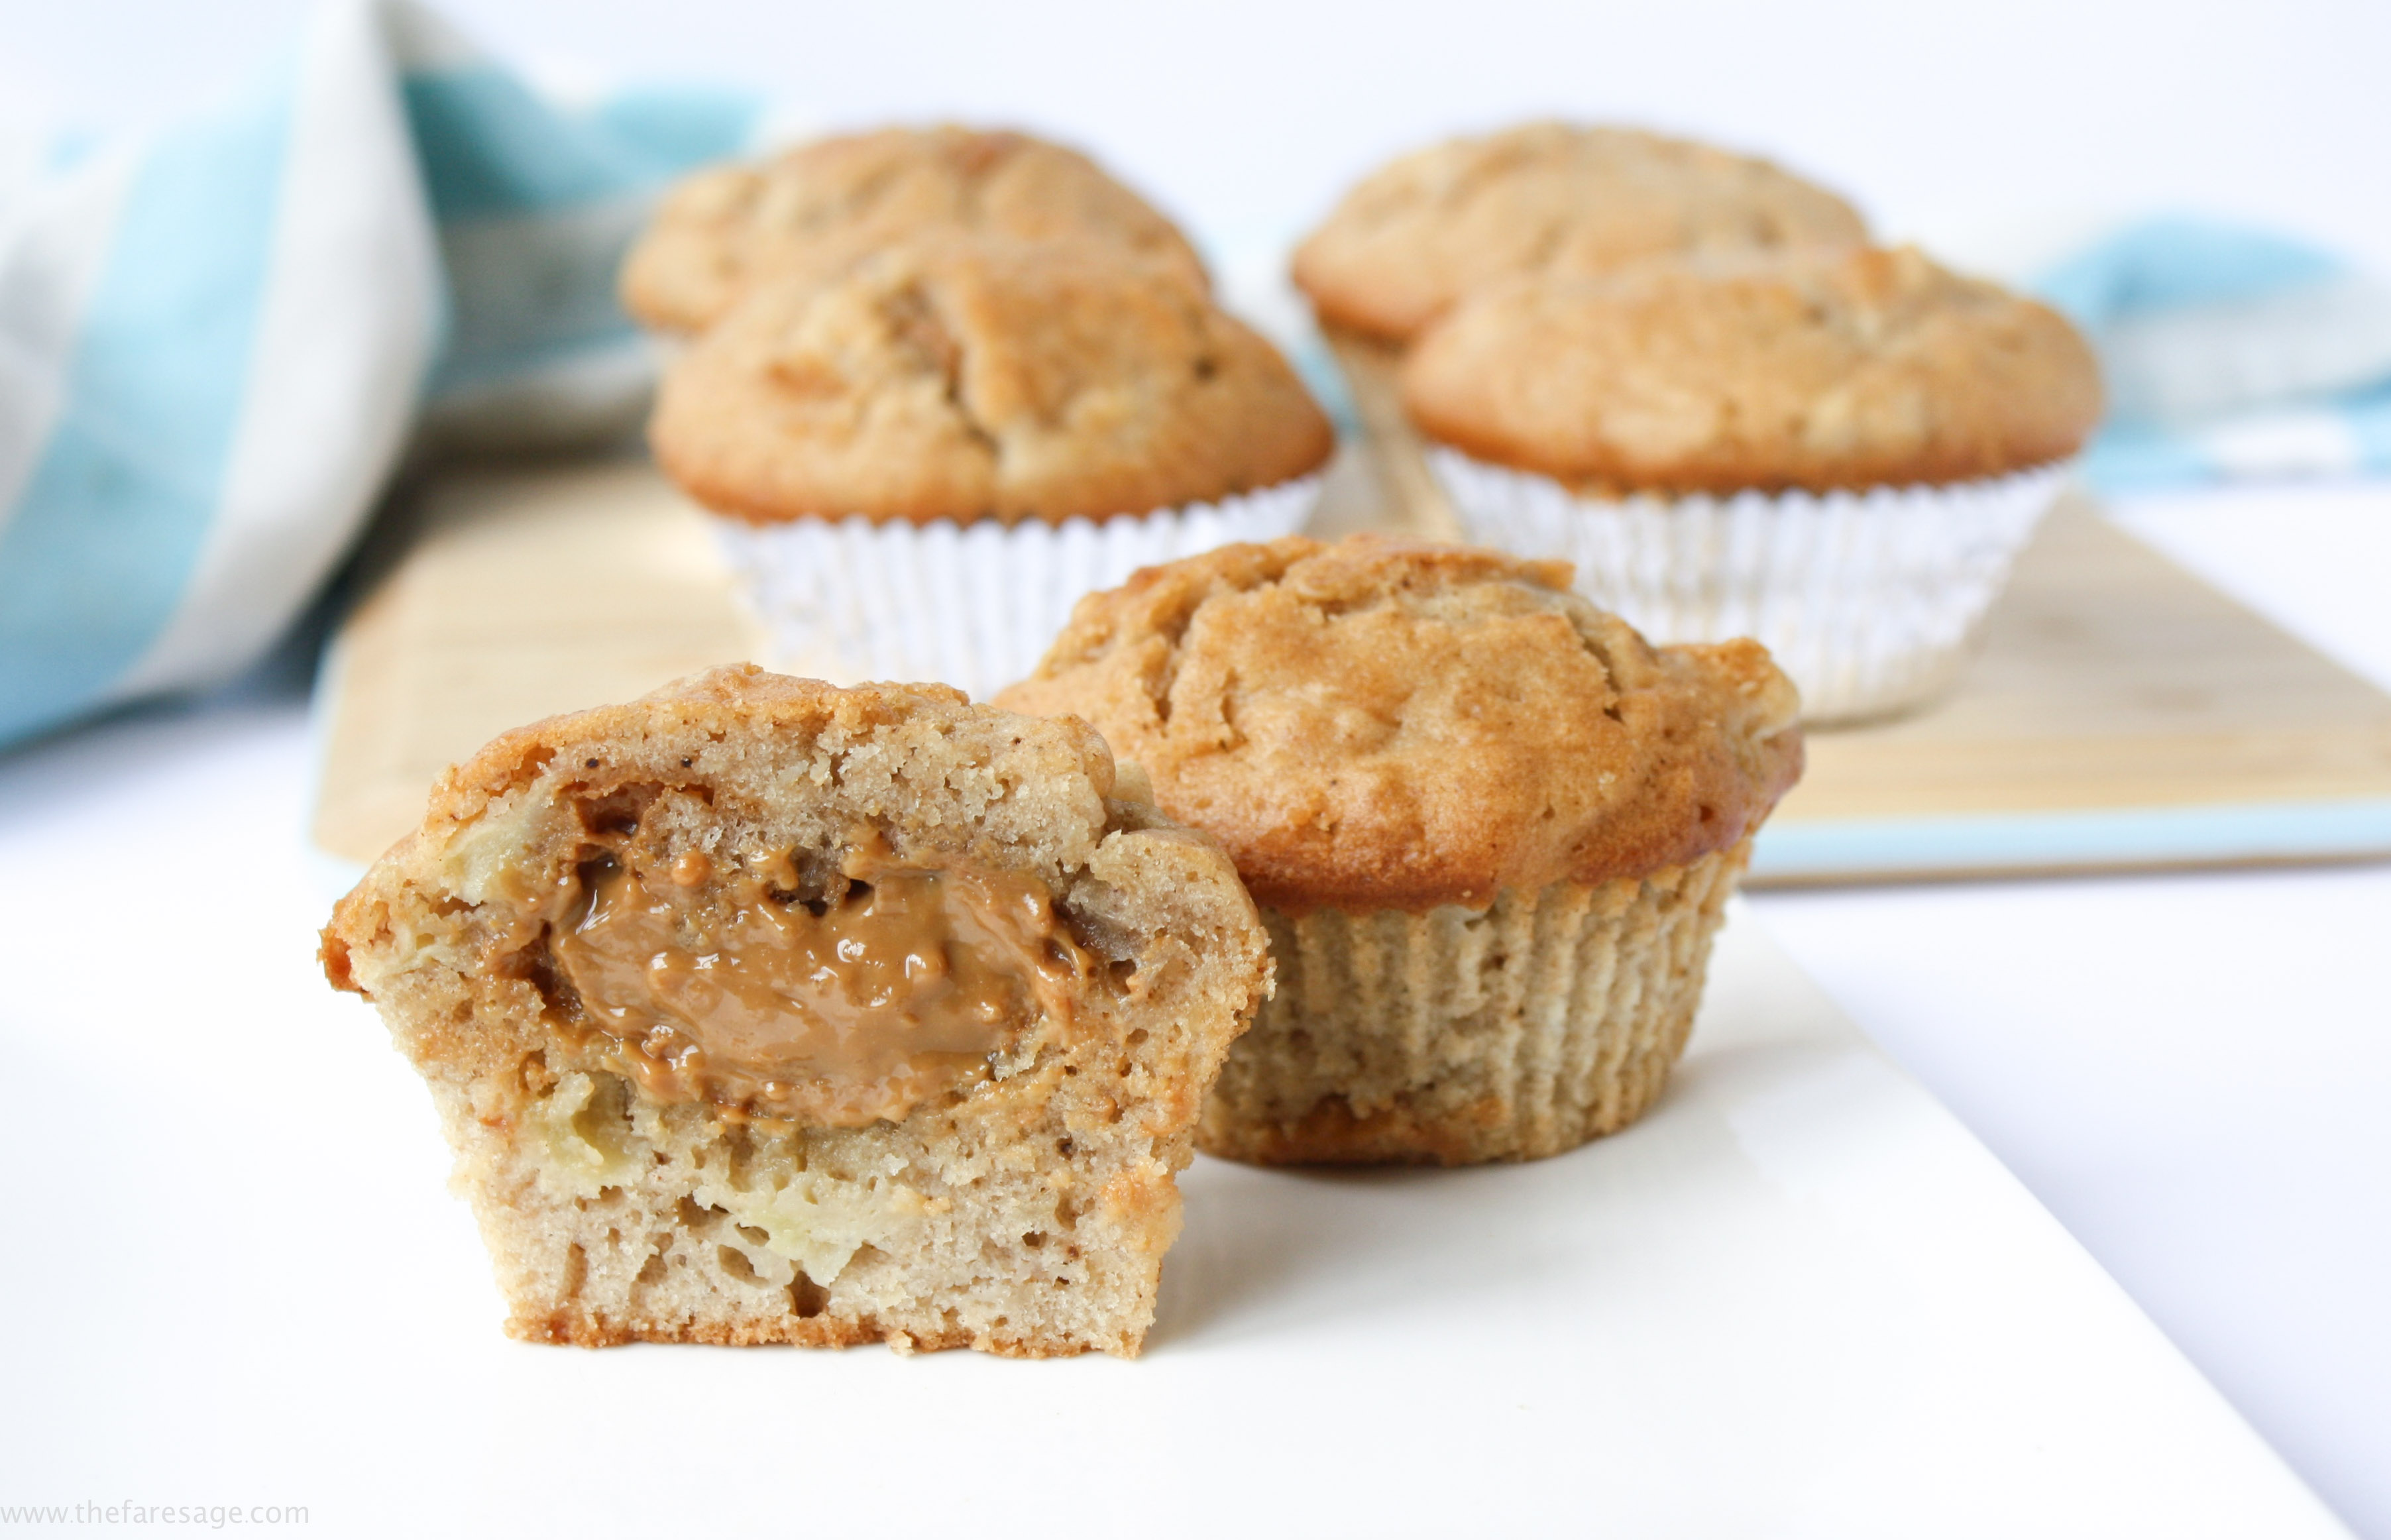 Apple pie muffins with salted caramel centre | The Fare Sage